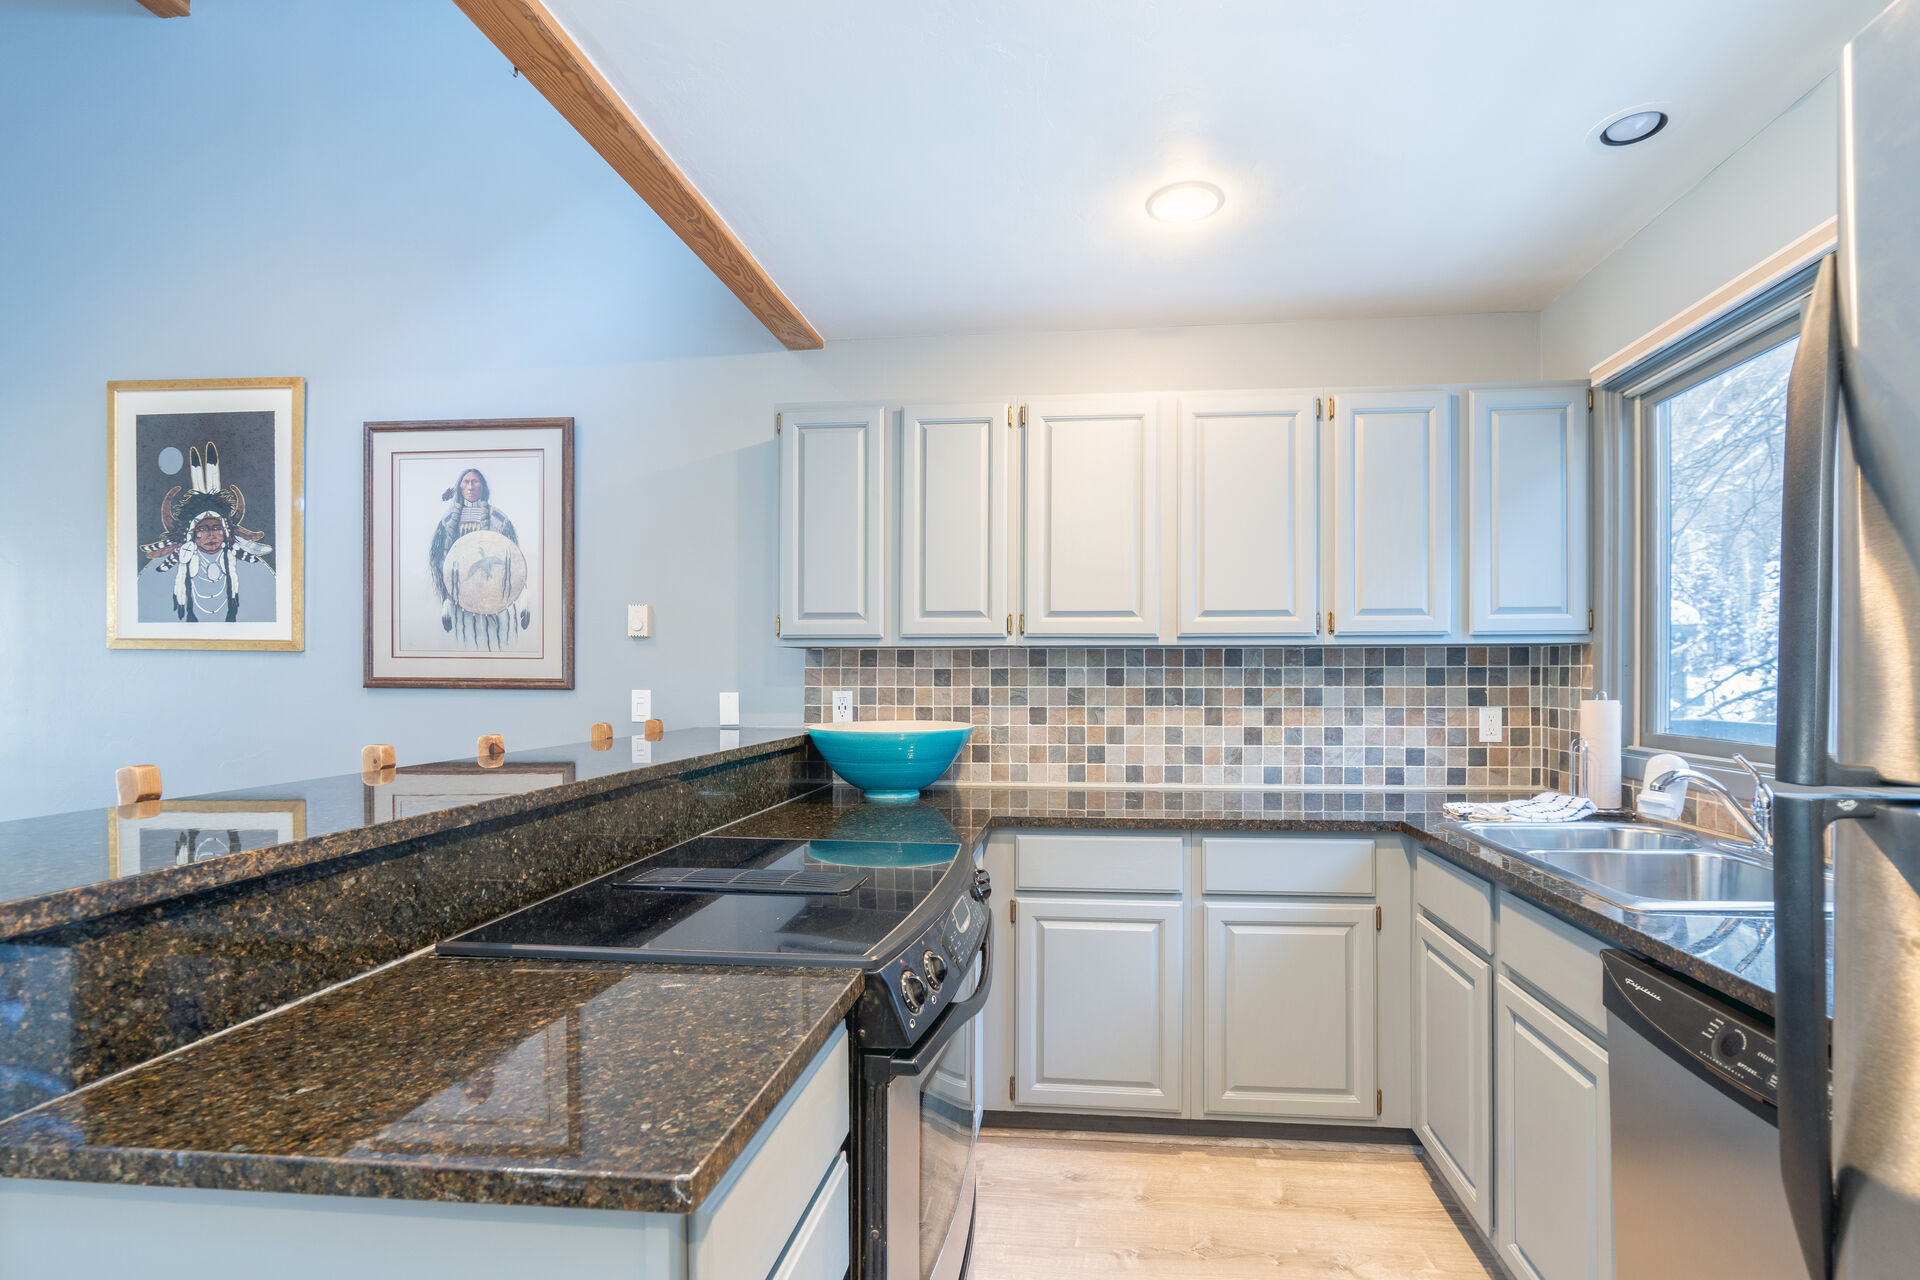 The kitchen with an oven and counters